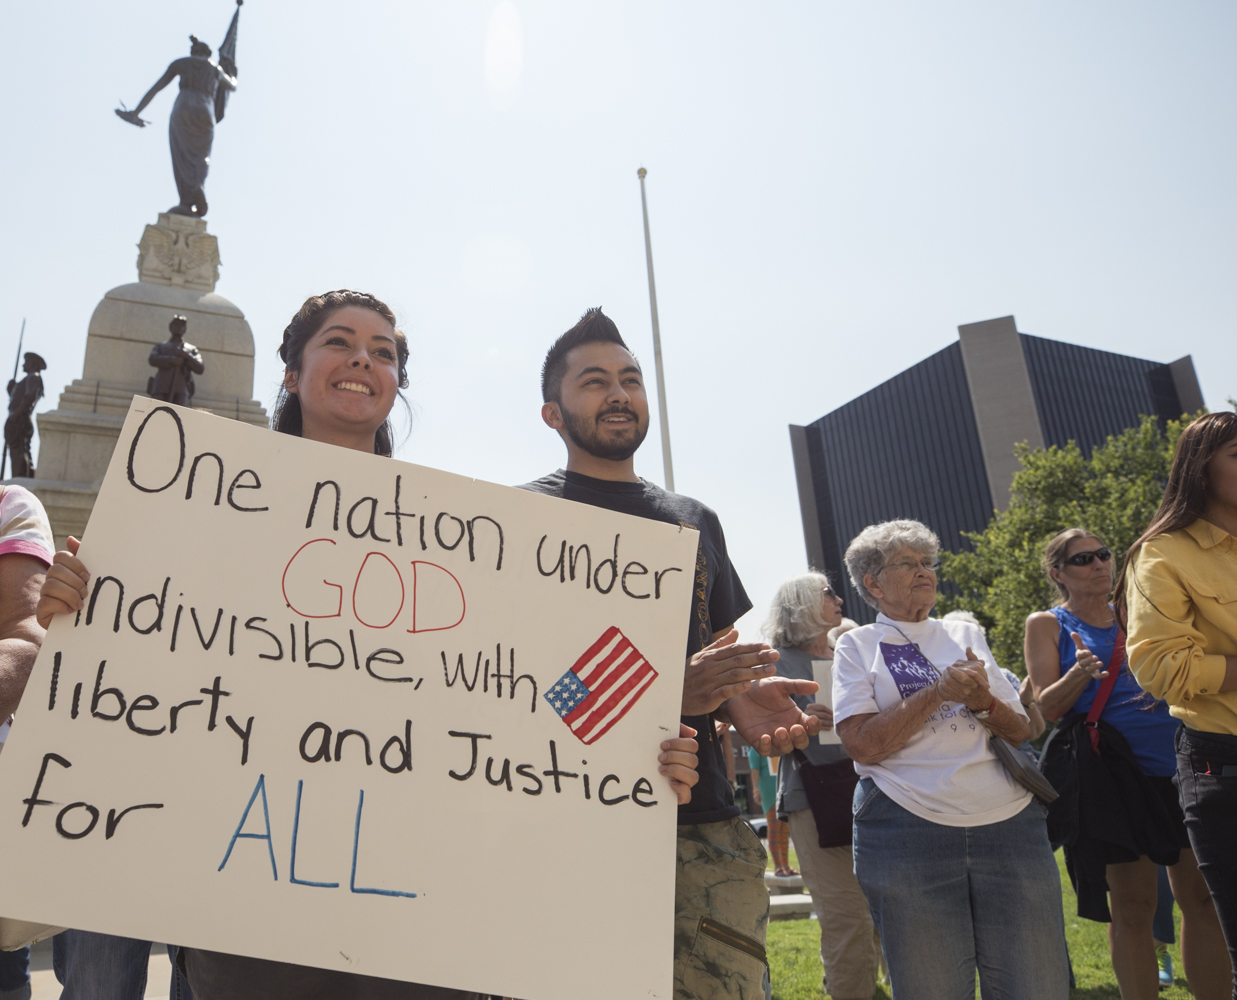 Wichita State Students Karen Segura and Jaime Segura hold up a sign and applaud during the #HereToStay support event held at the Historical County Courthouse on Tuesday afternoon. (Sept. 5, 2017)